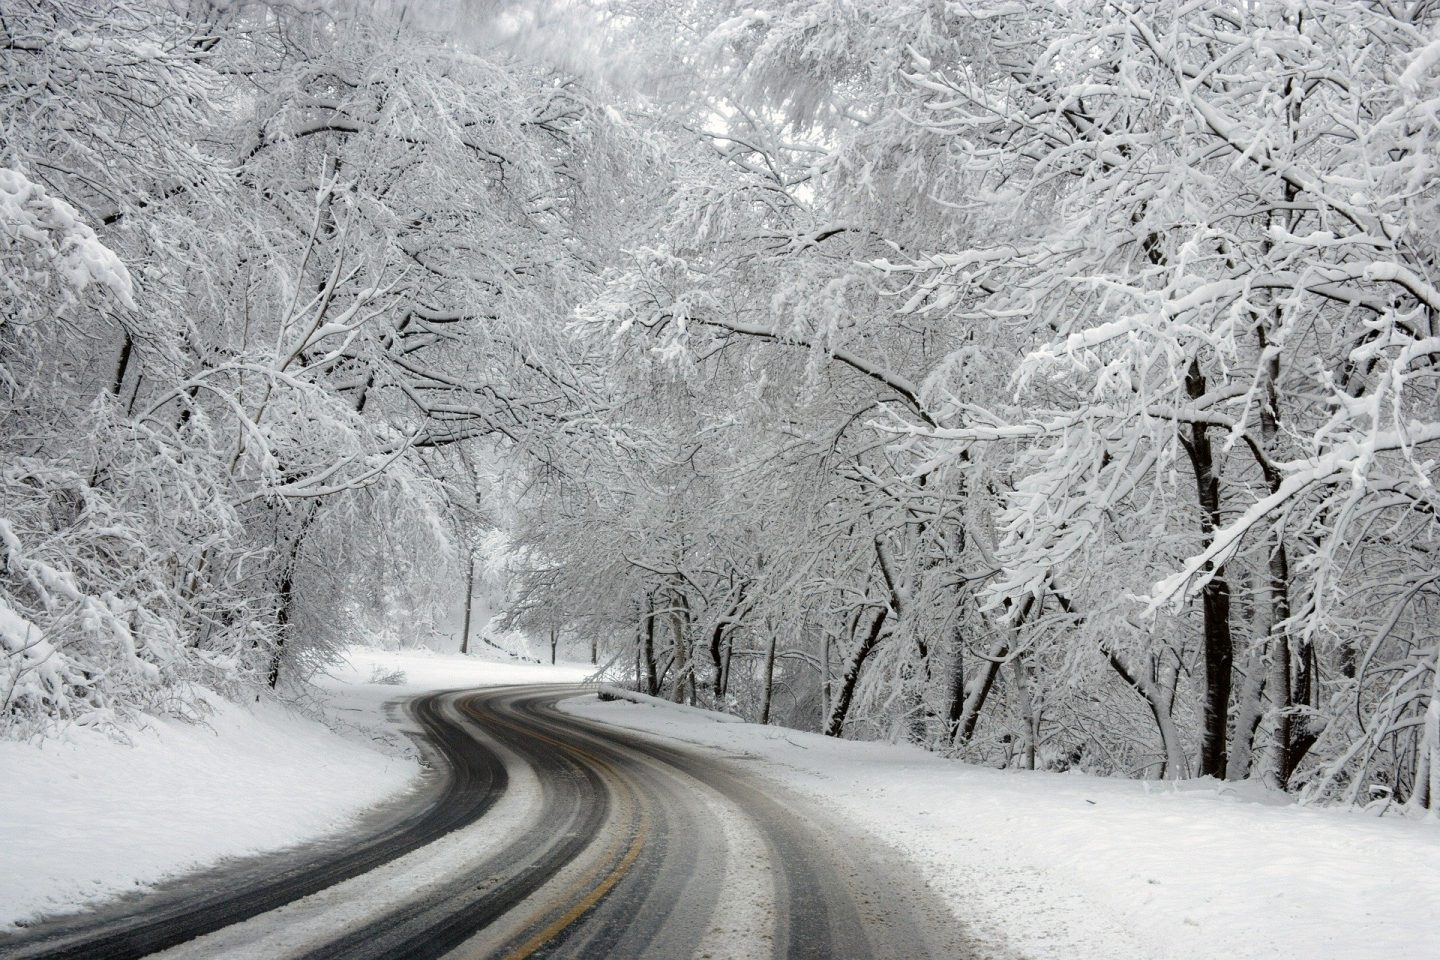 A country road in the winter with snow covered trees and tyre tracks on the road